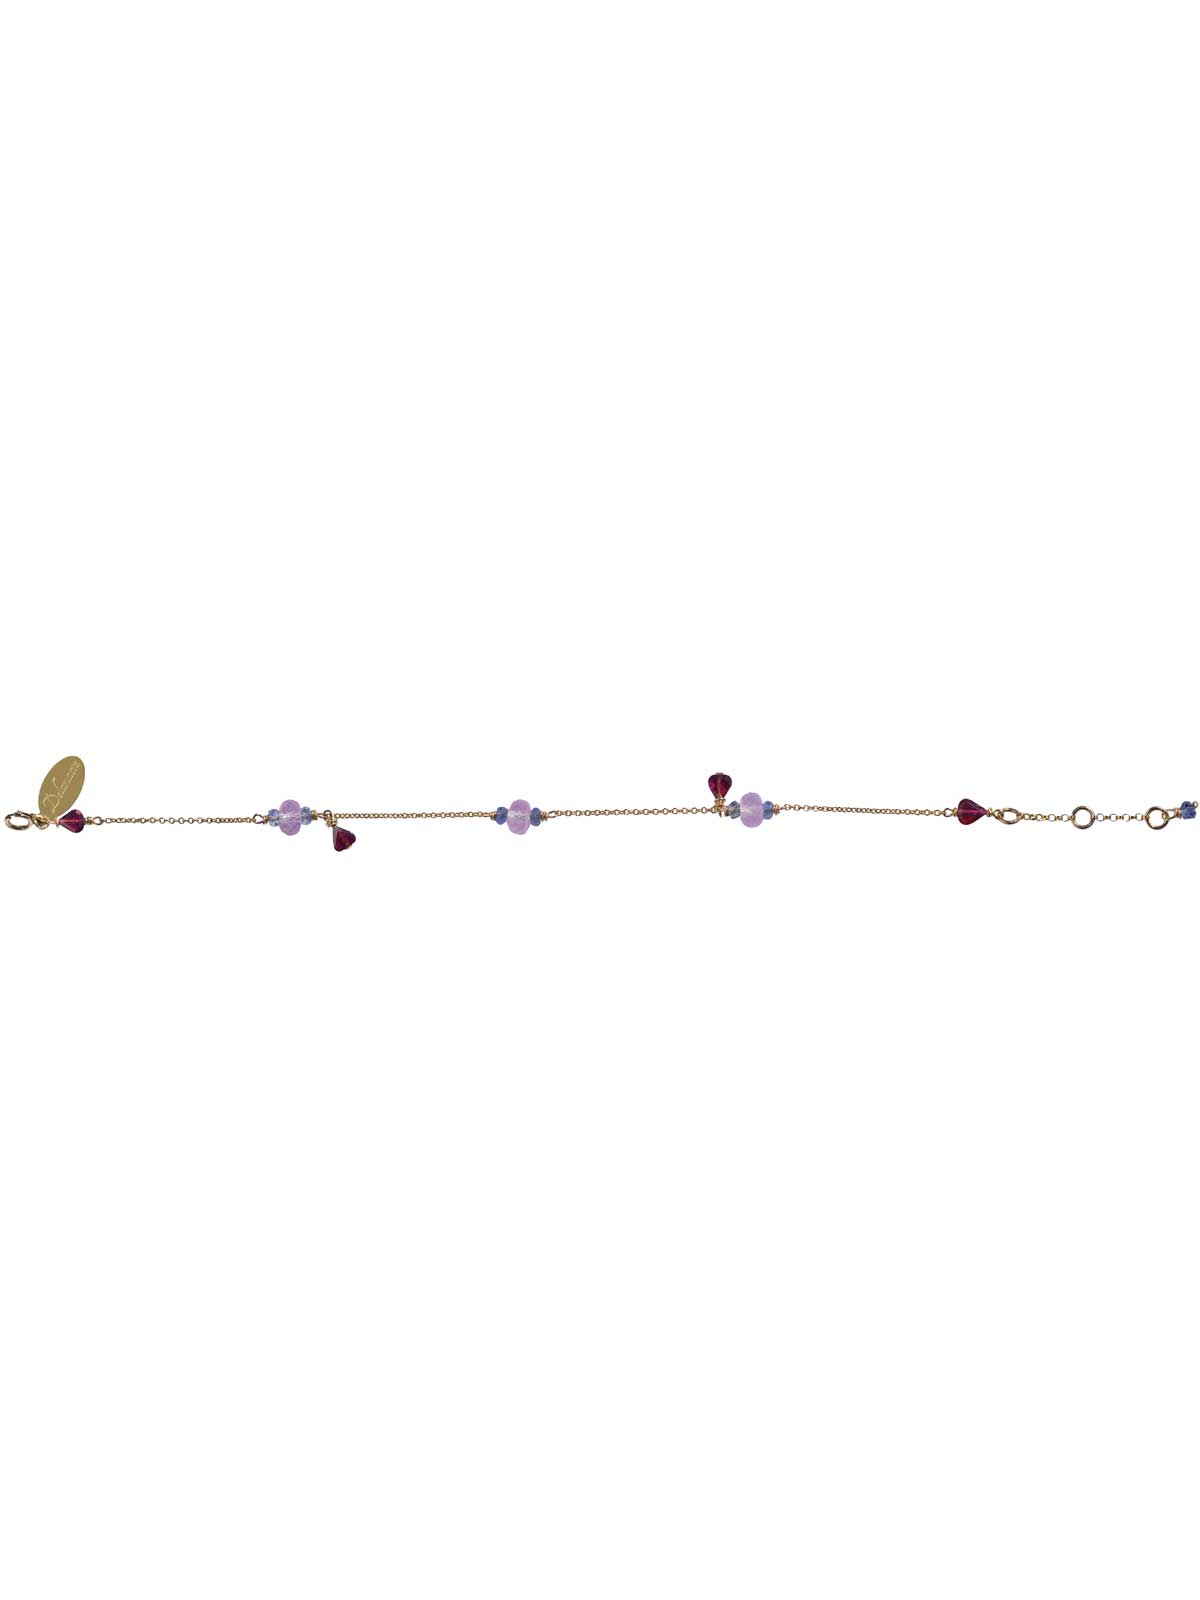 Bracelet Gold and Garnet Iolite Amethyst